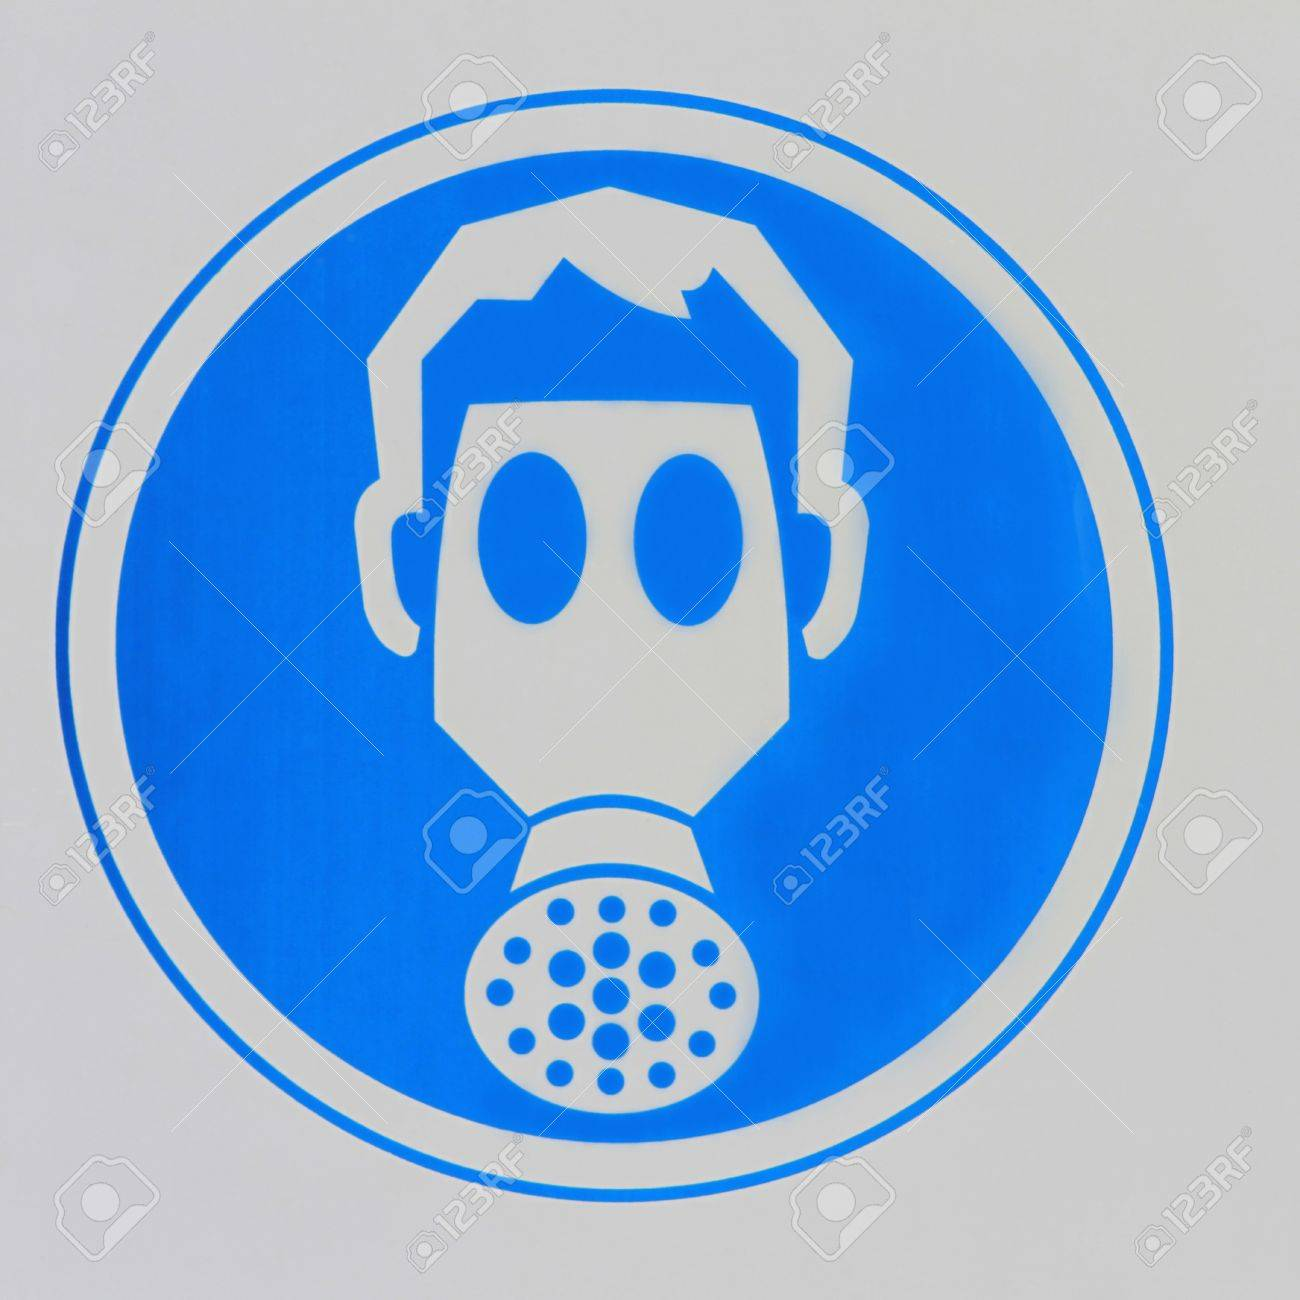 Actual gas mask sign in an industrial workplace Stock Photo - 13224254